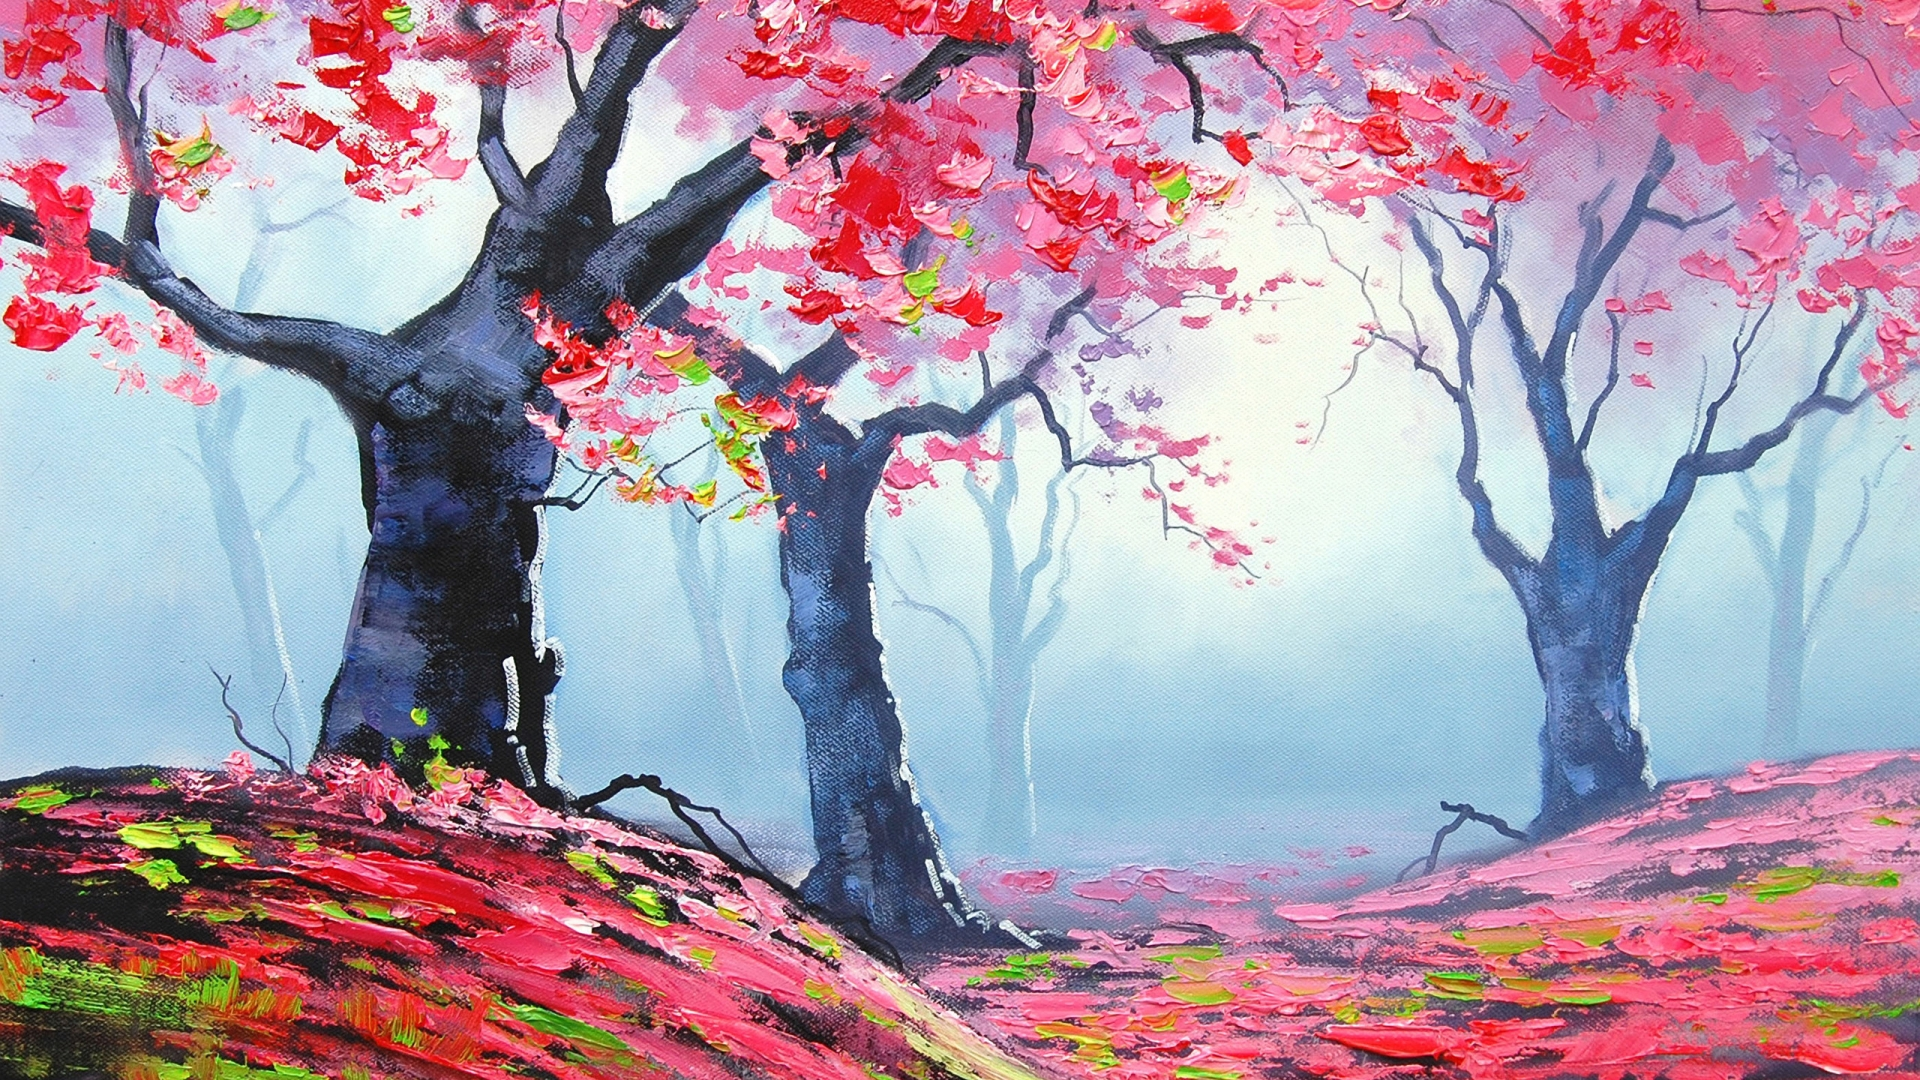 Autumn Red Forest Painting for 1920 x 1080 HDTV 1080p resolution